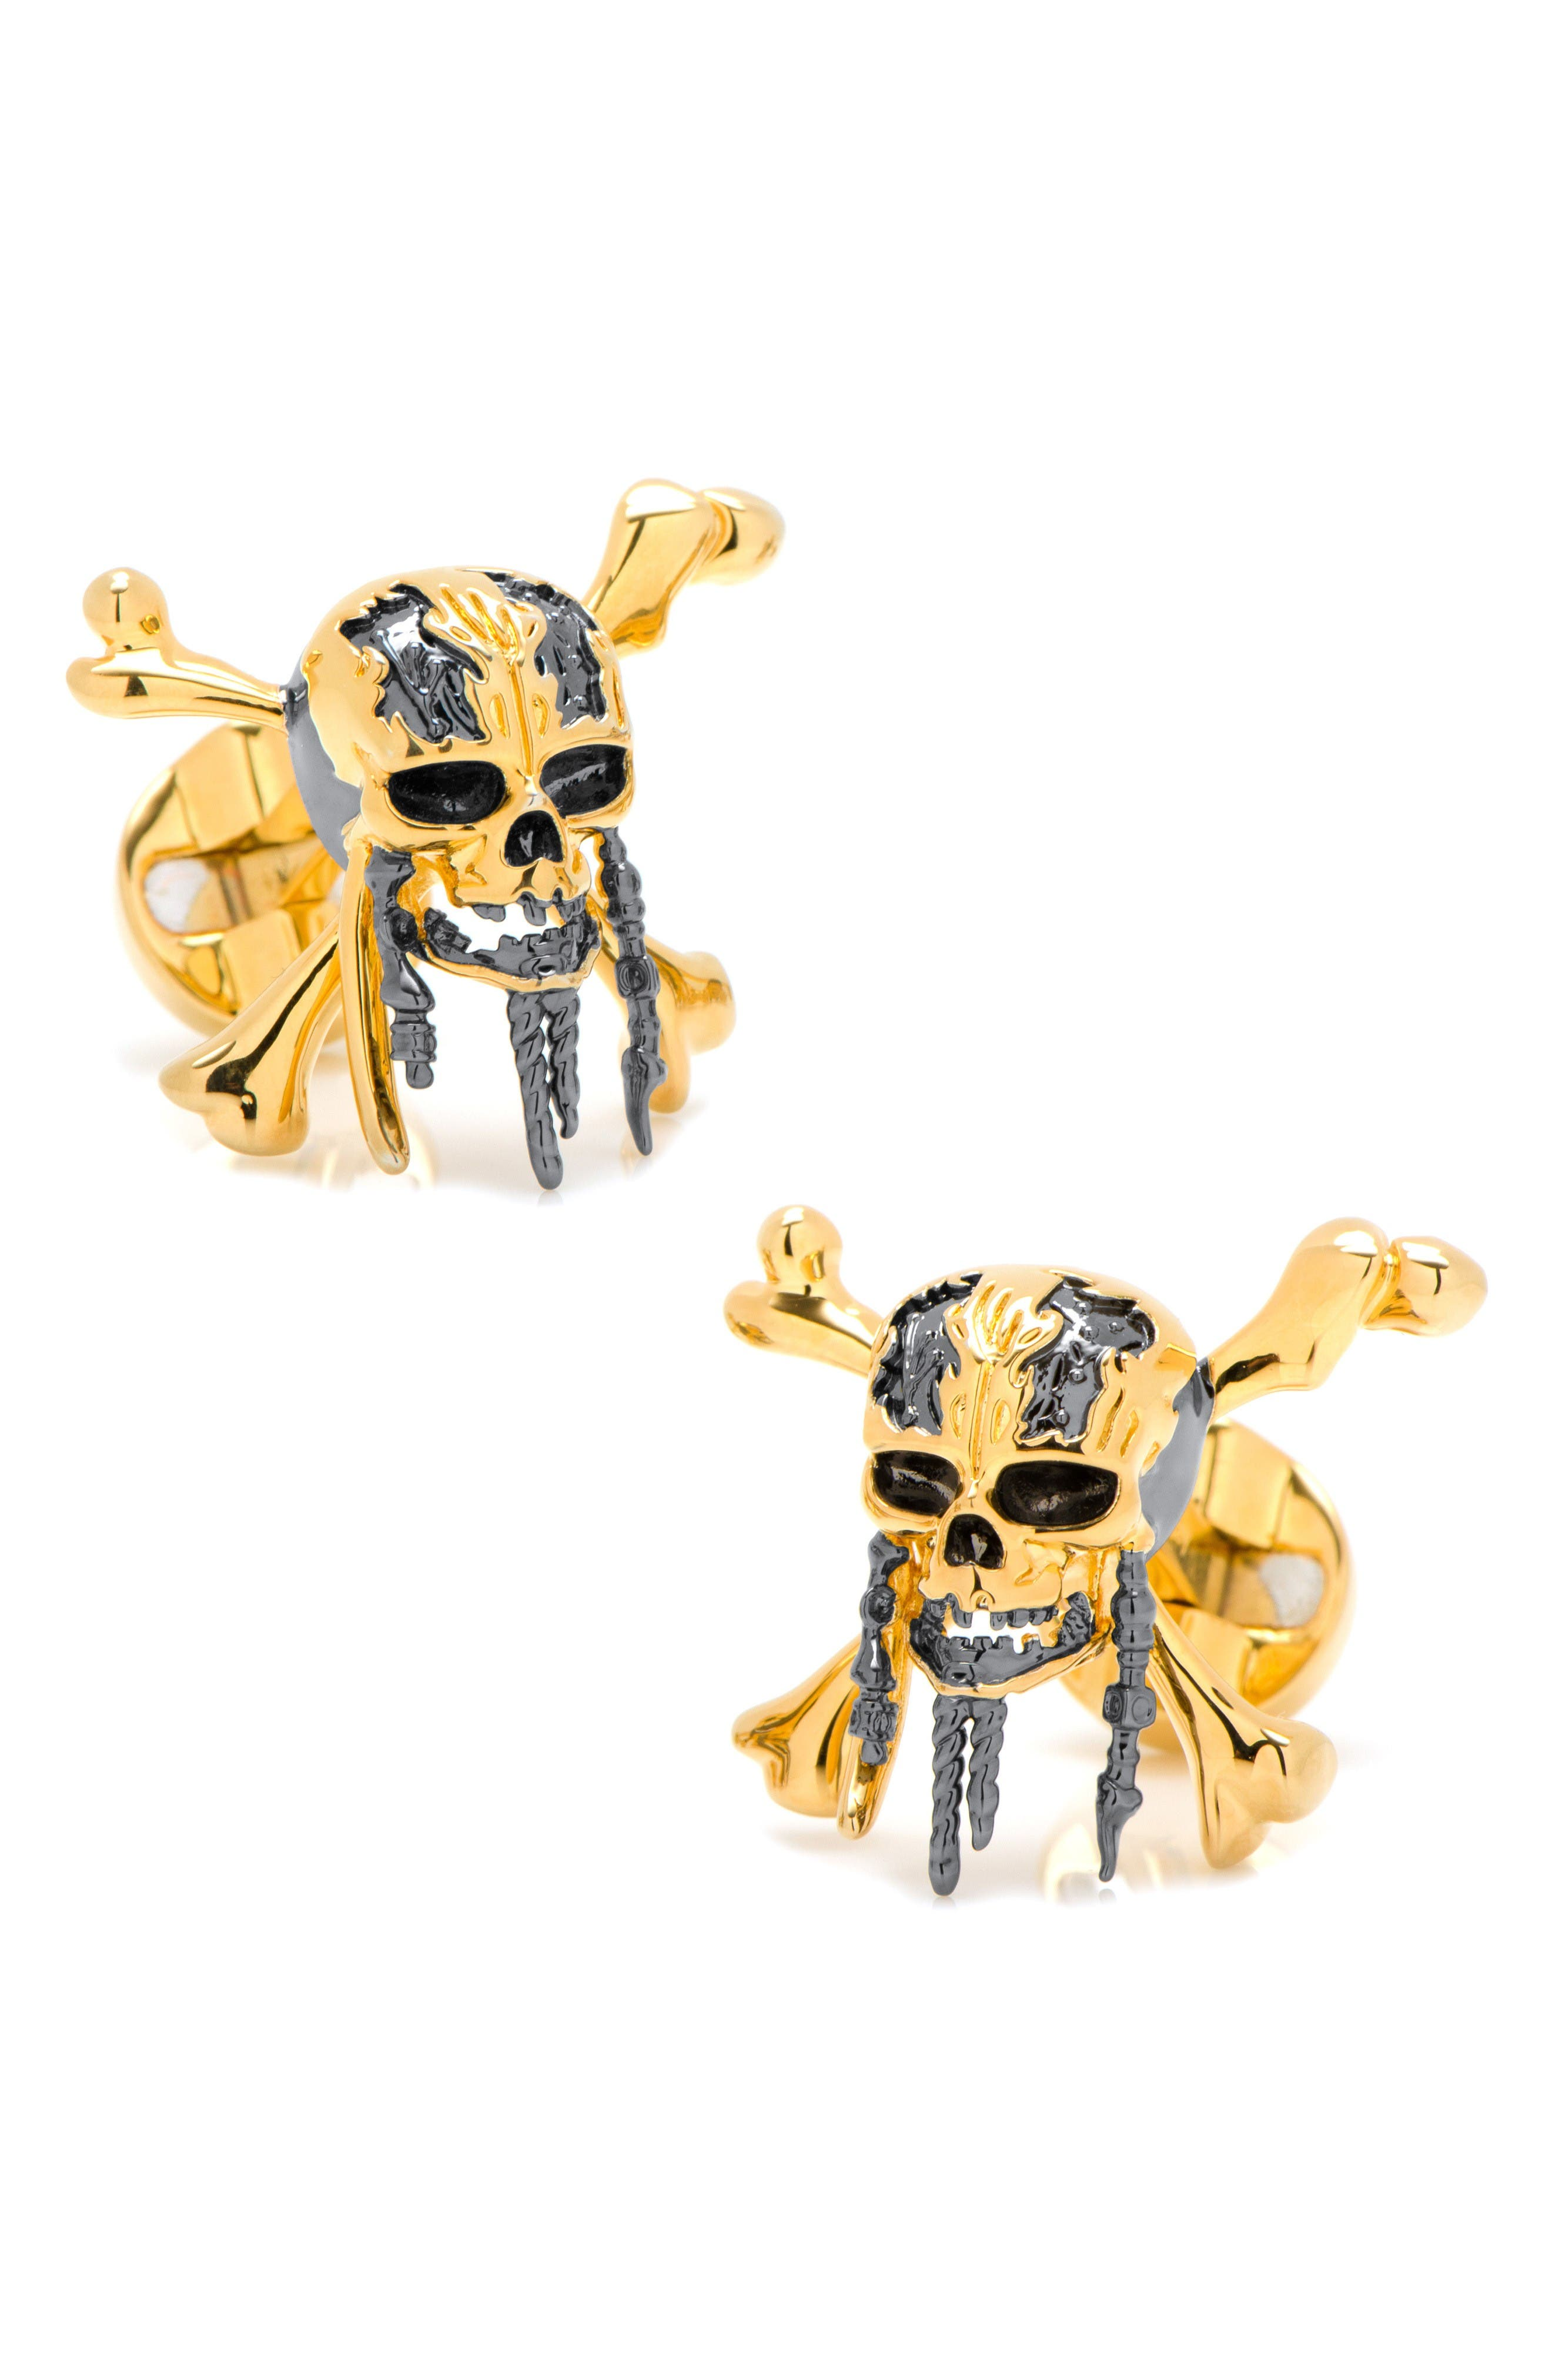 Pirates 3D Skull Cuff Links,                             Main thumbnail 1, color,                             Black